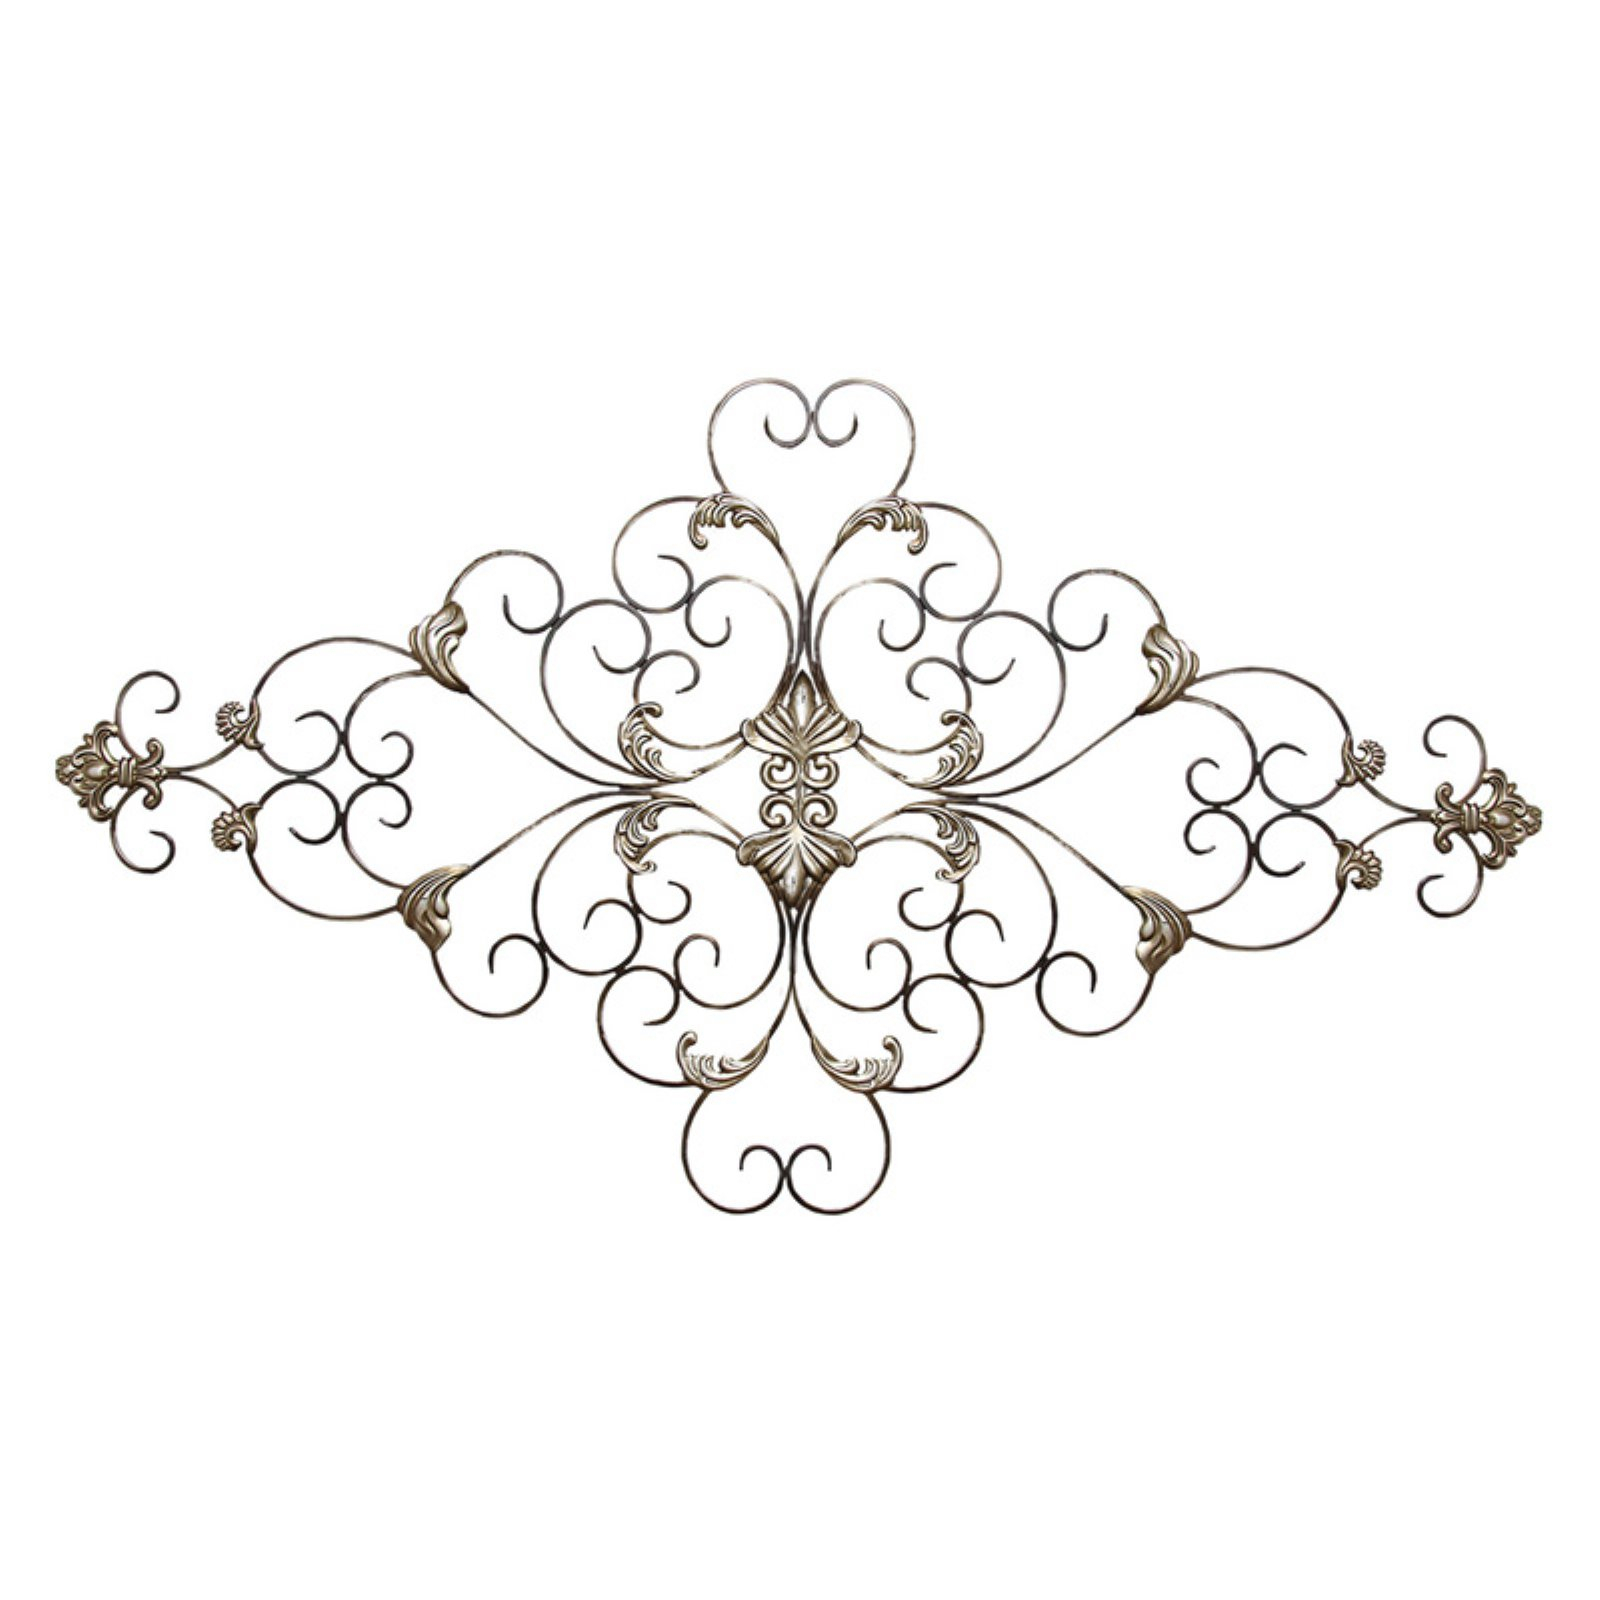 Stratton Home Ornate Scroll Wall Sculpture | Products In pertaining to Ornate Scroll Wall Decor (Image 23 of 30)